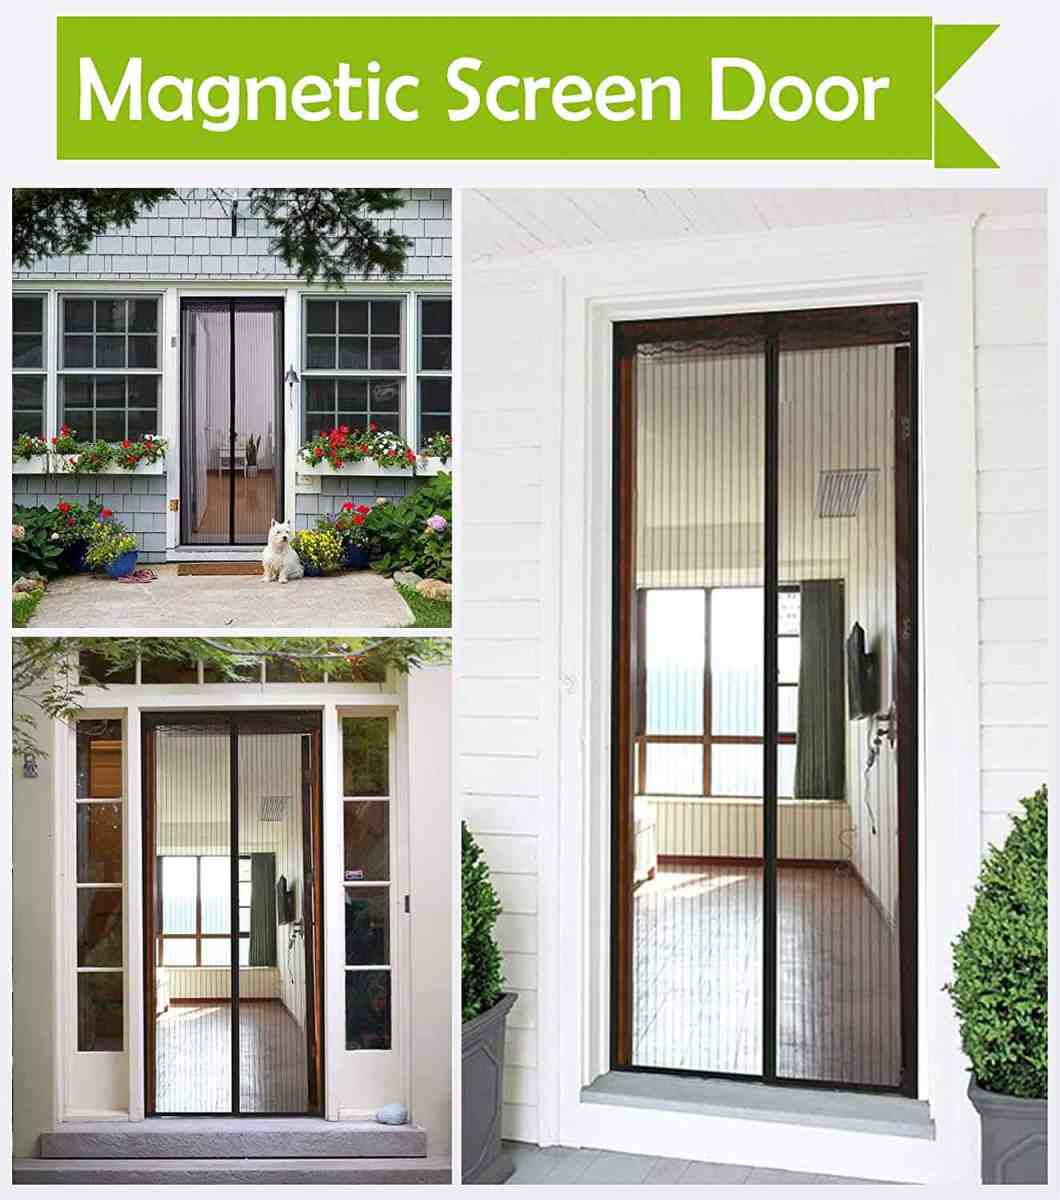 Amazon : Magnetic Screen Door Just $7.59 W/Code (Reg : $18.99) (As of 5/22/2019 4.50 PM CDT)